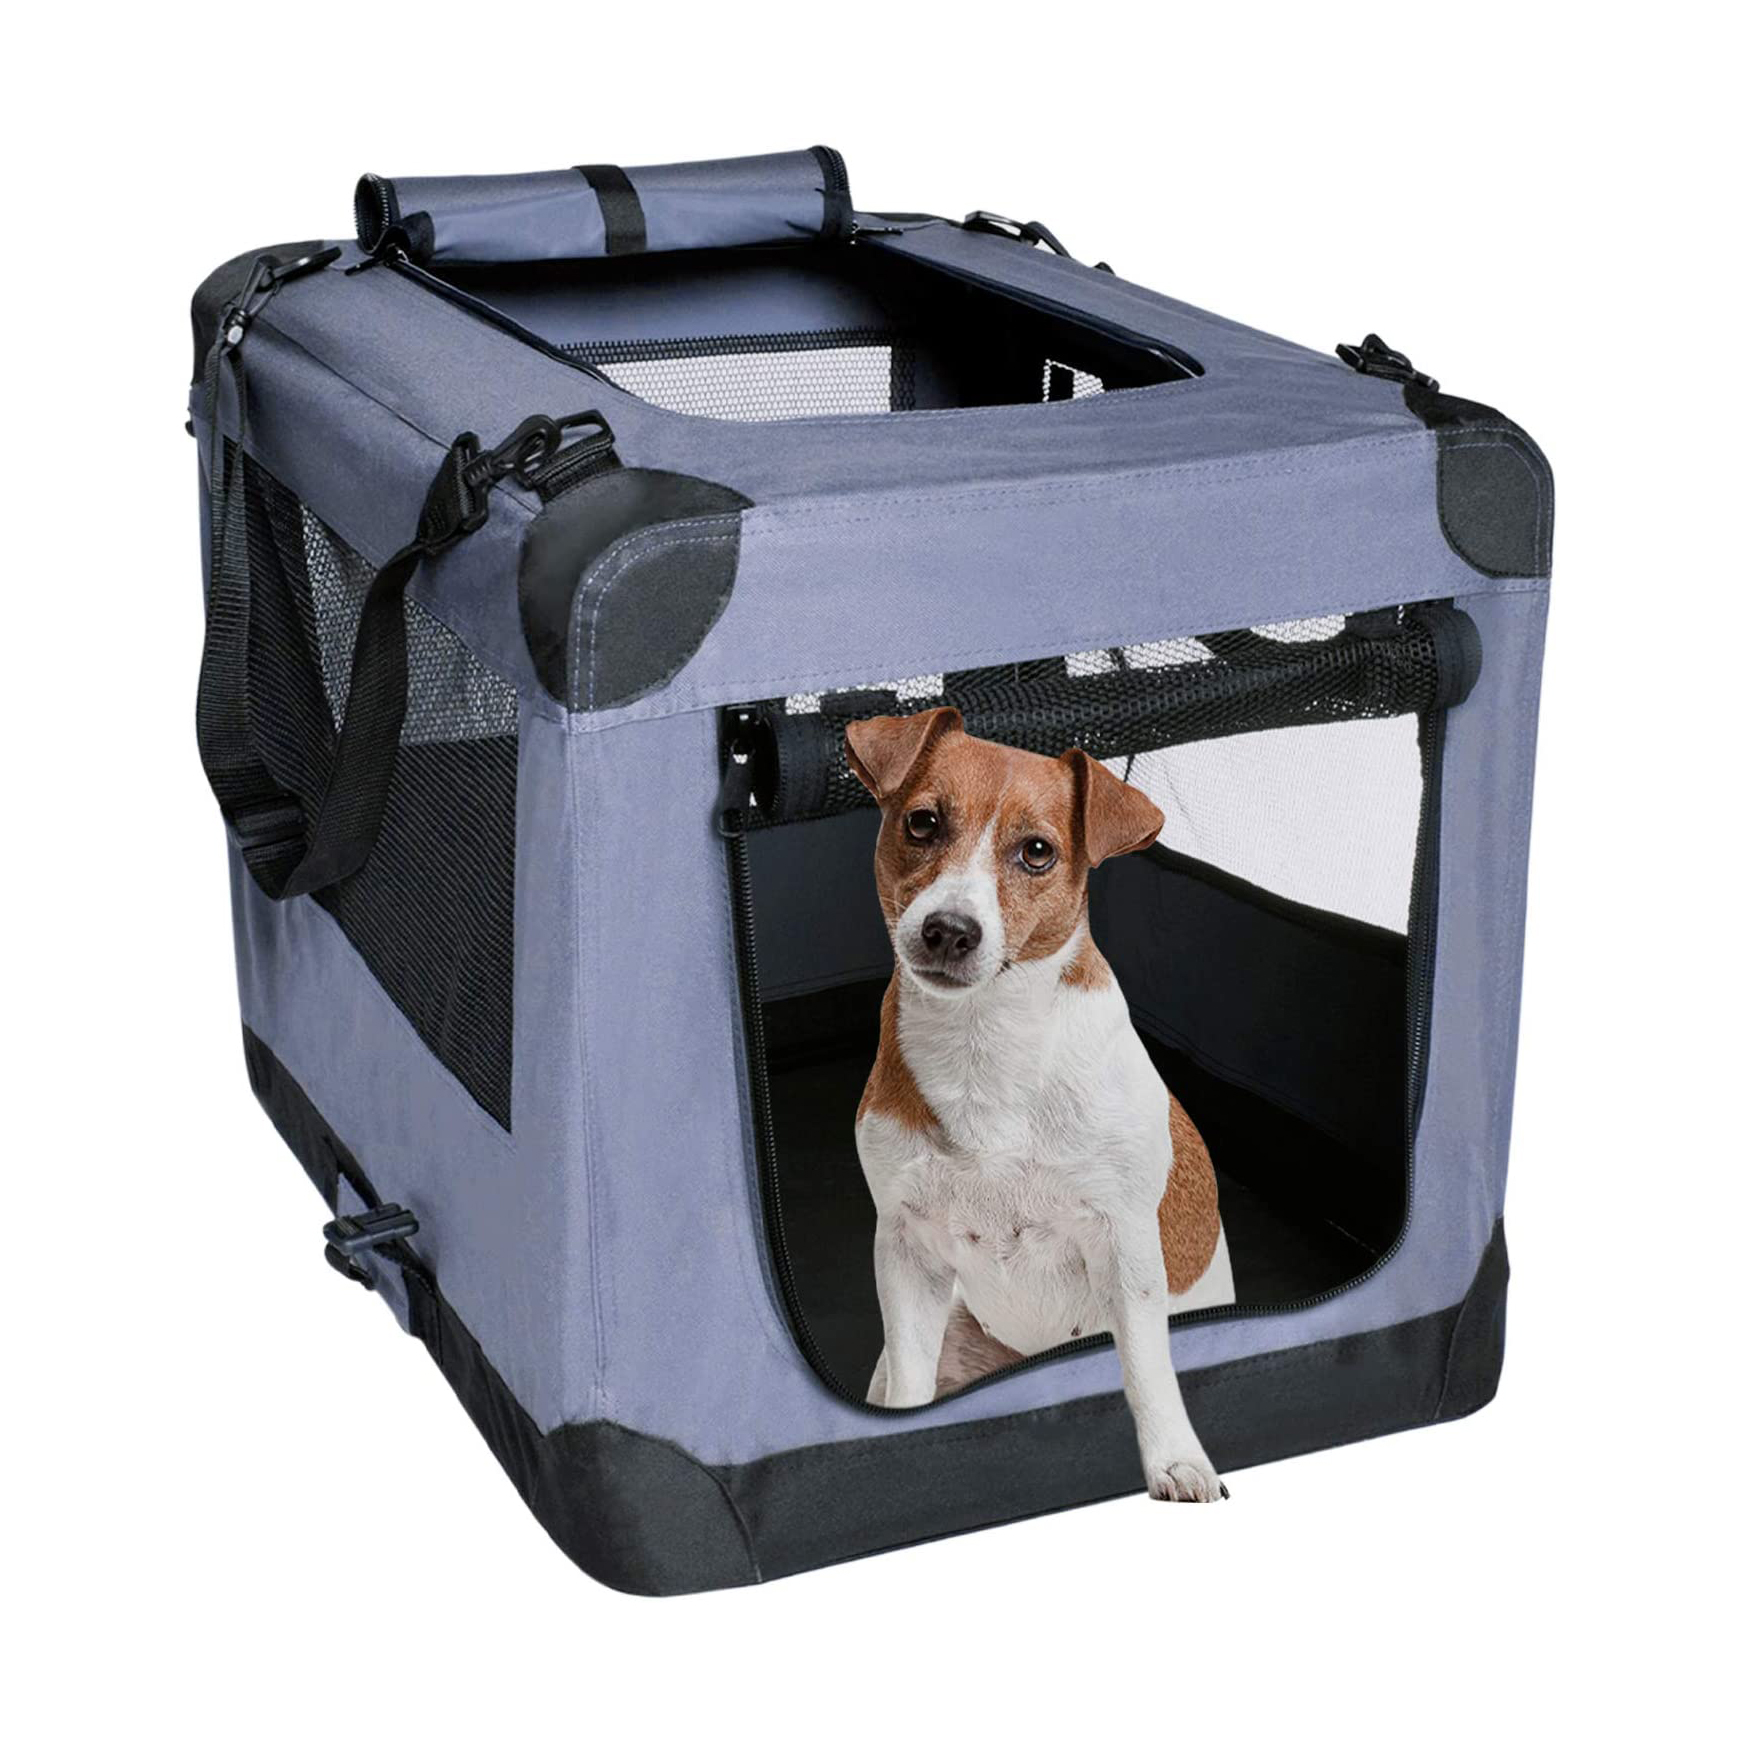 arf-pets-dog-soft-crate-kennel-for-pet